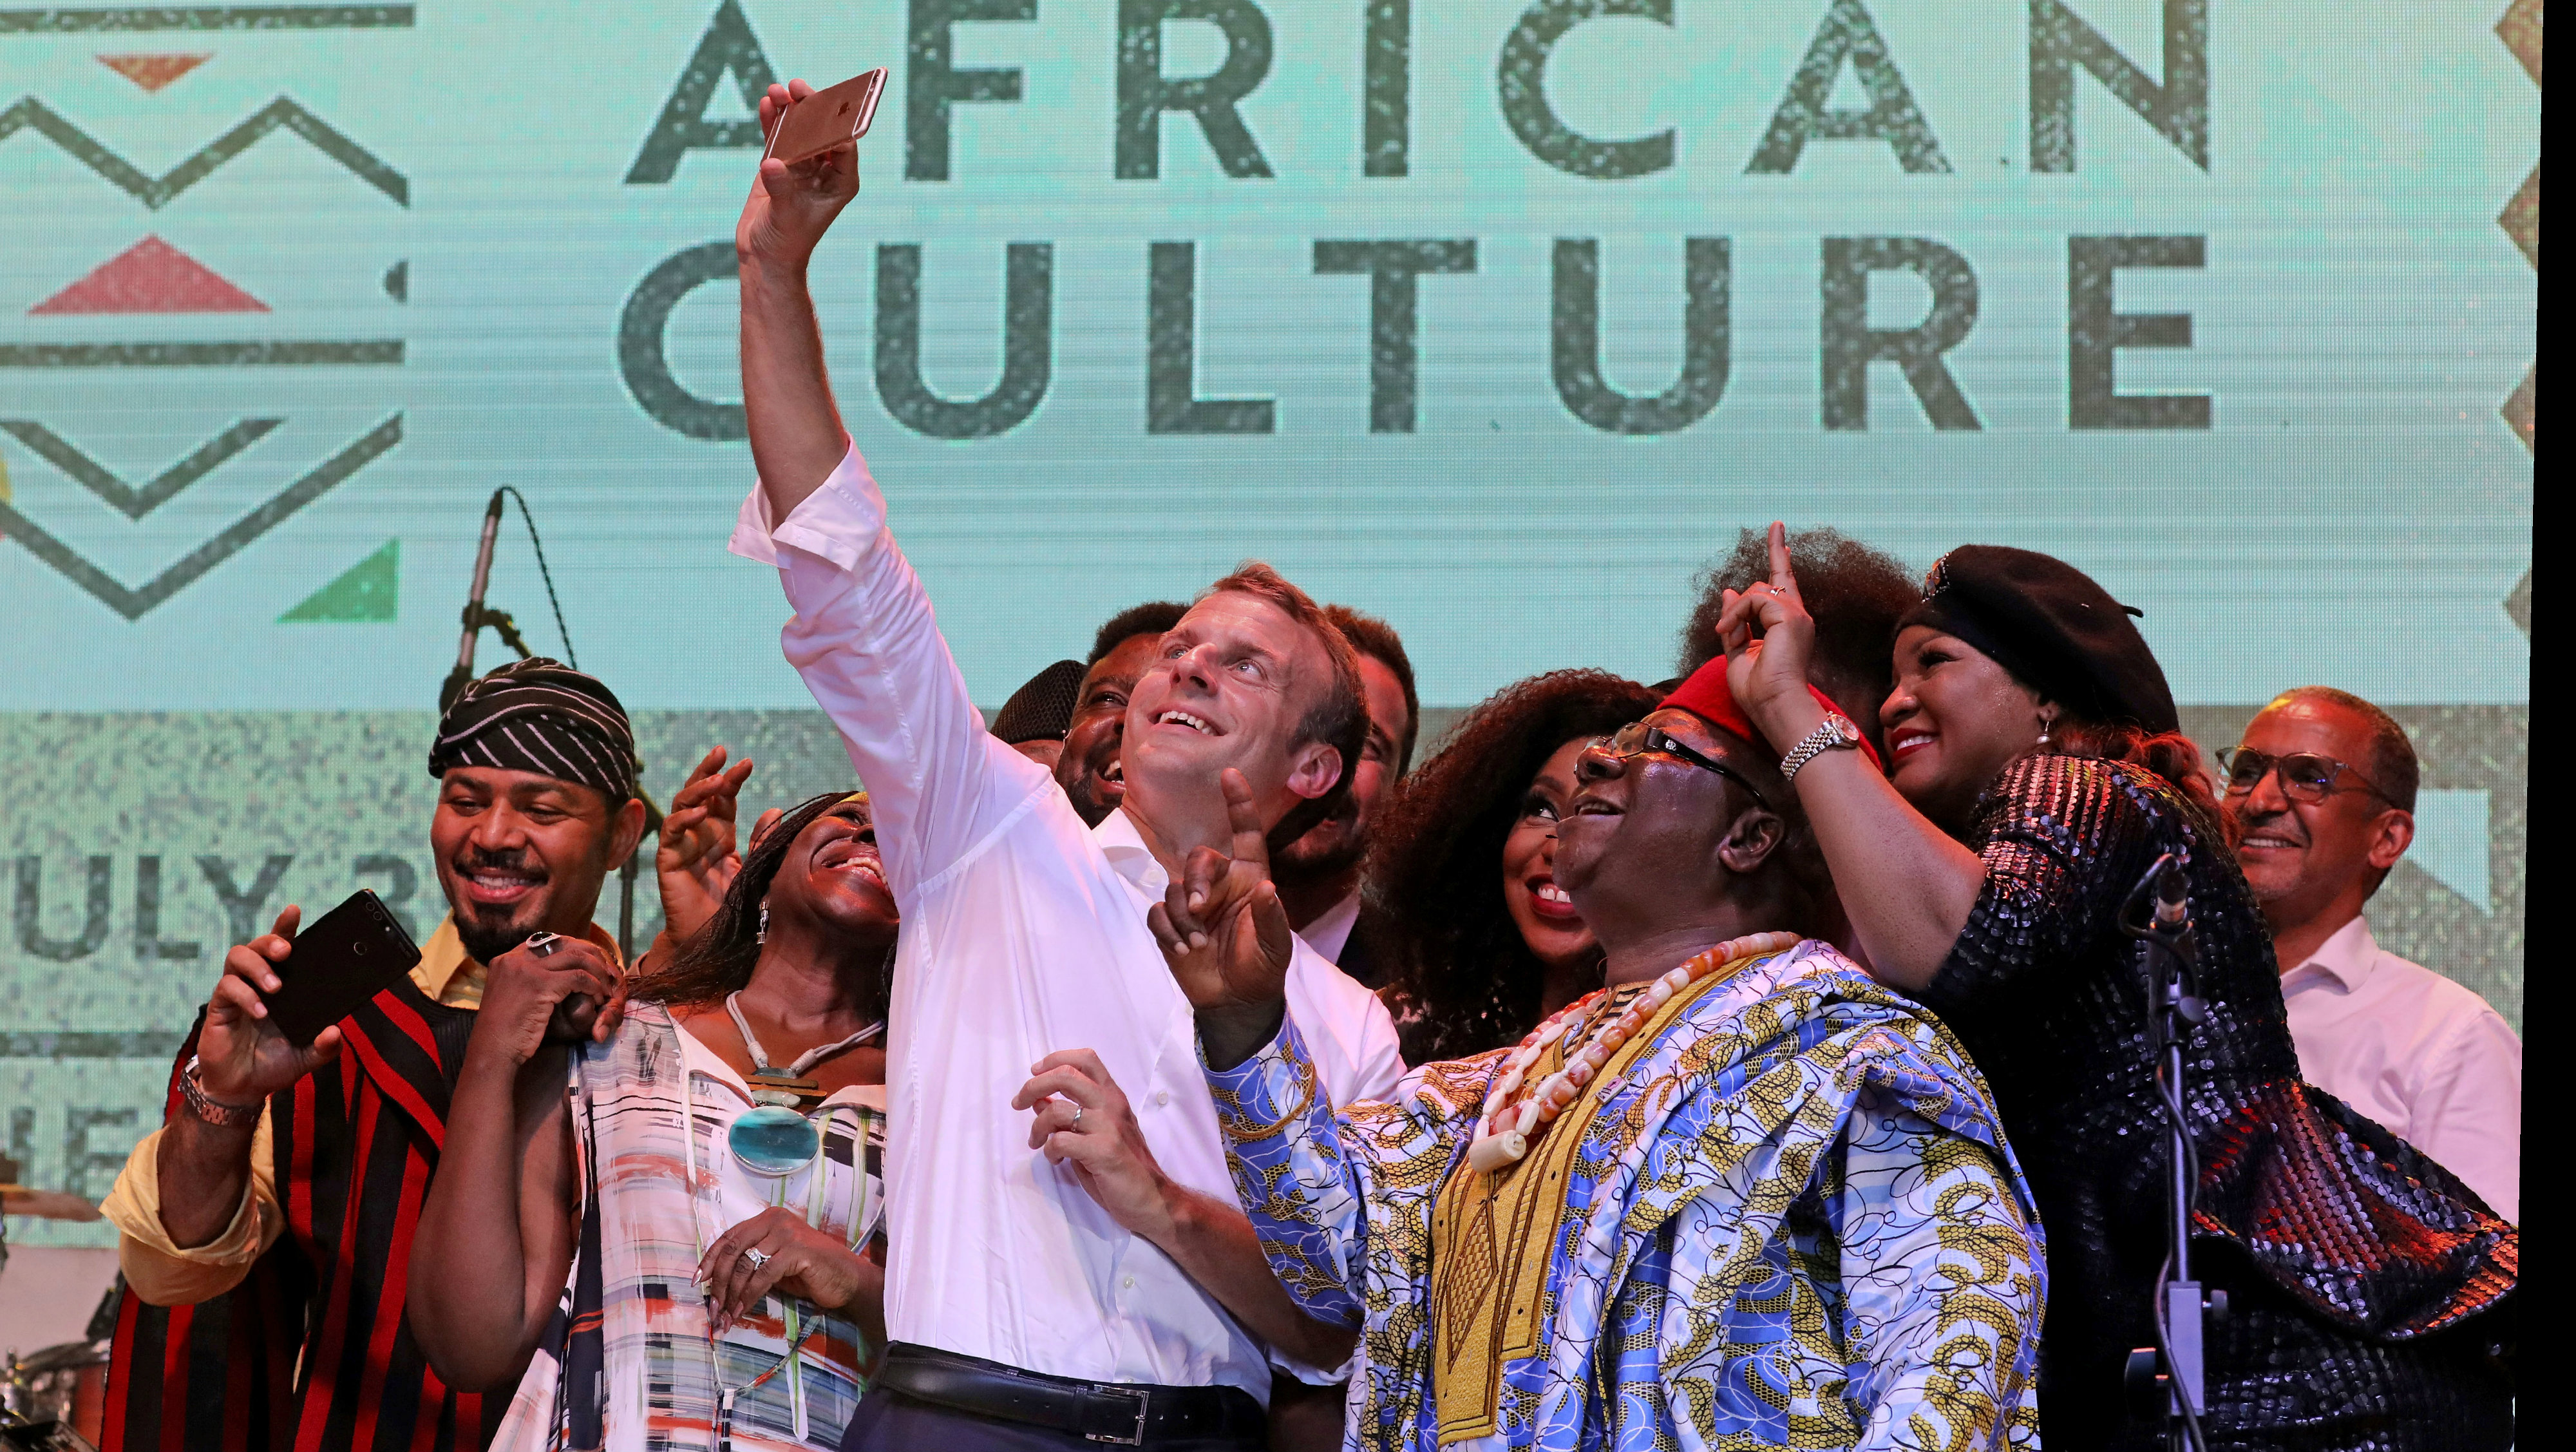 French President Emmanuel Macron (C) takes a selfie with Nollywood artists during a live show in the AfriKa Shrine in Lagos, Nigeria, July 3, 2018. Picture taken July 3, 2018.